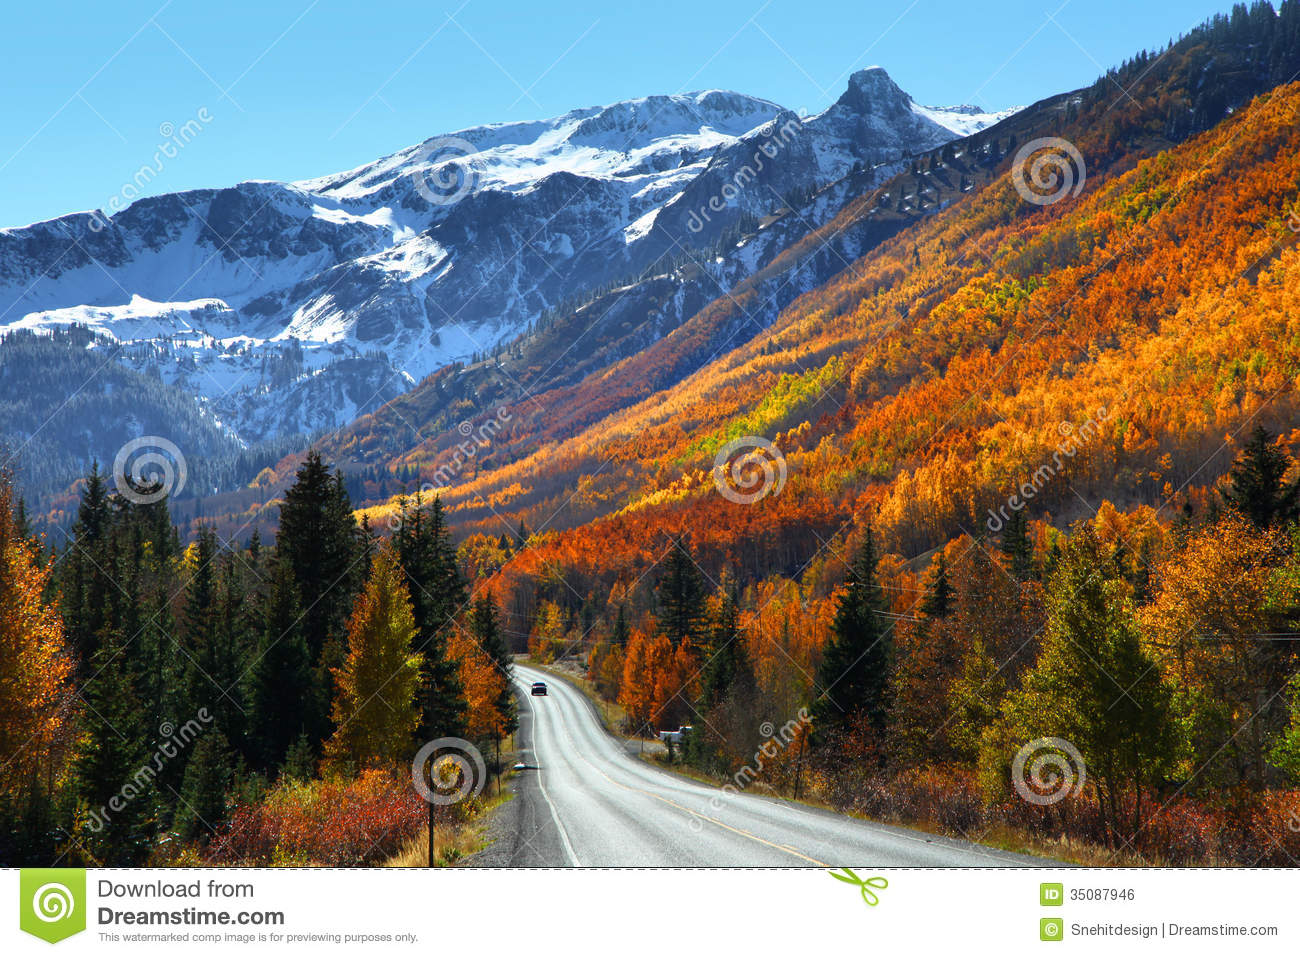 Fall Aspens Wallpaper Million Dollar Highway Royalty Free Stock Image Image